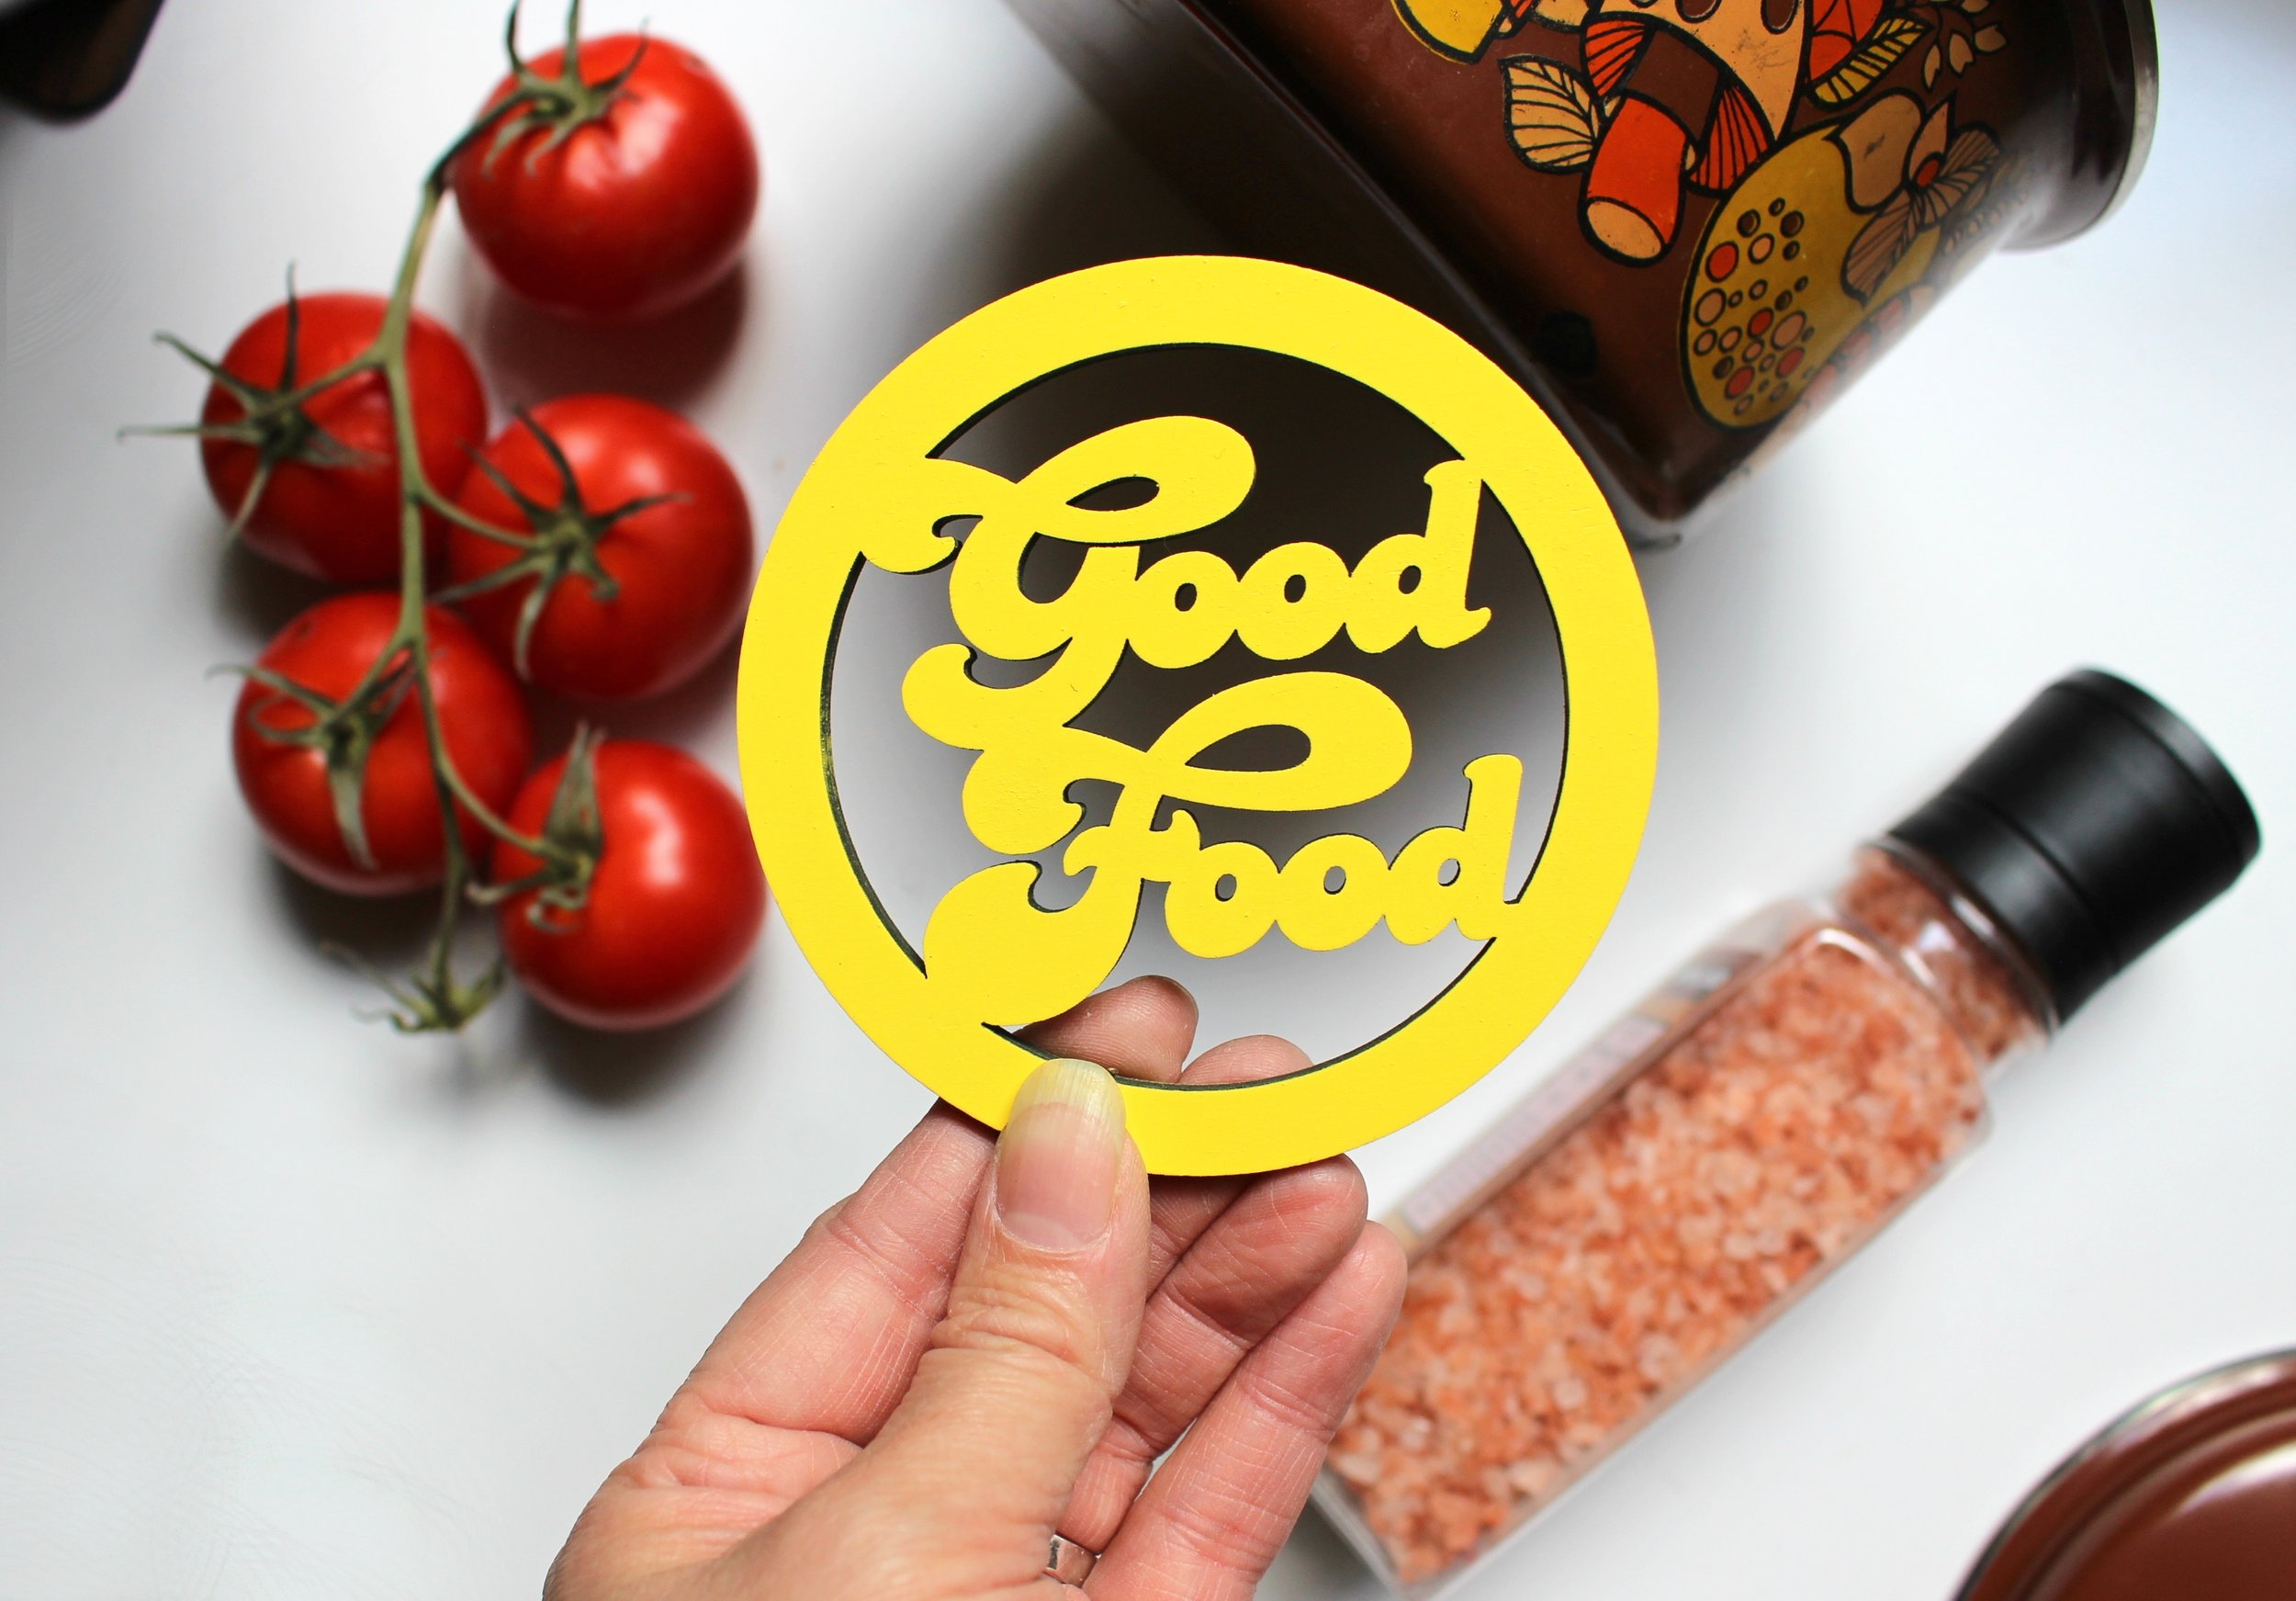 Good Food magnet by 6 by 6 arts